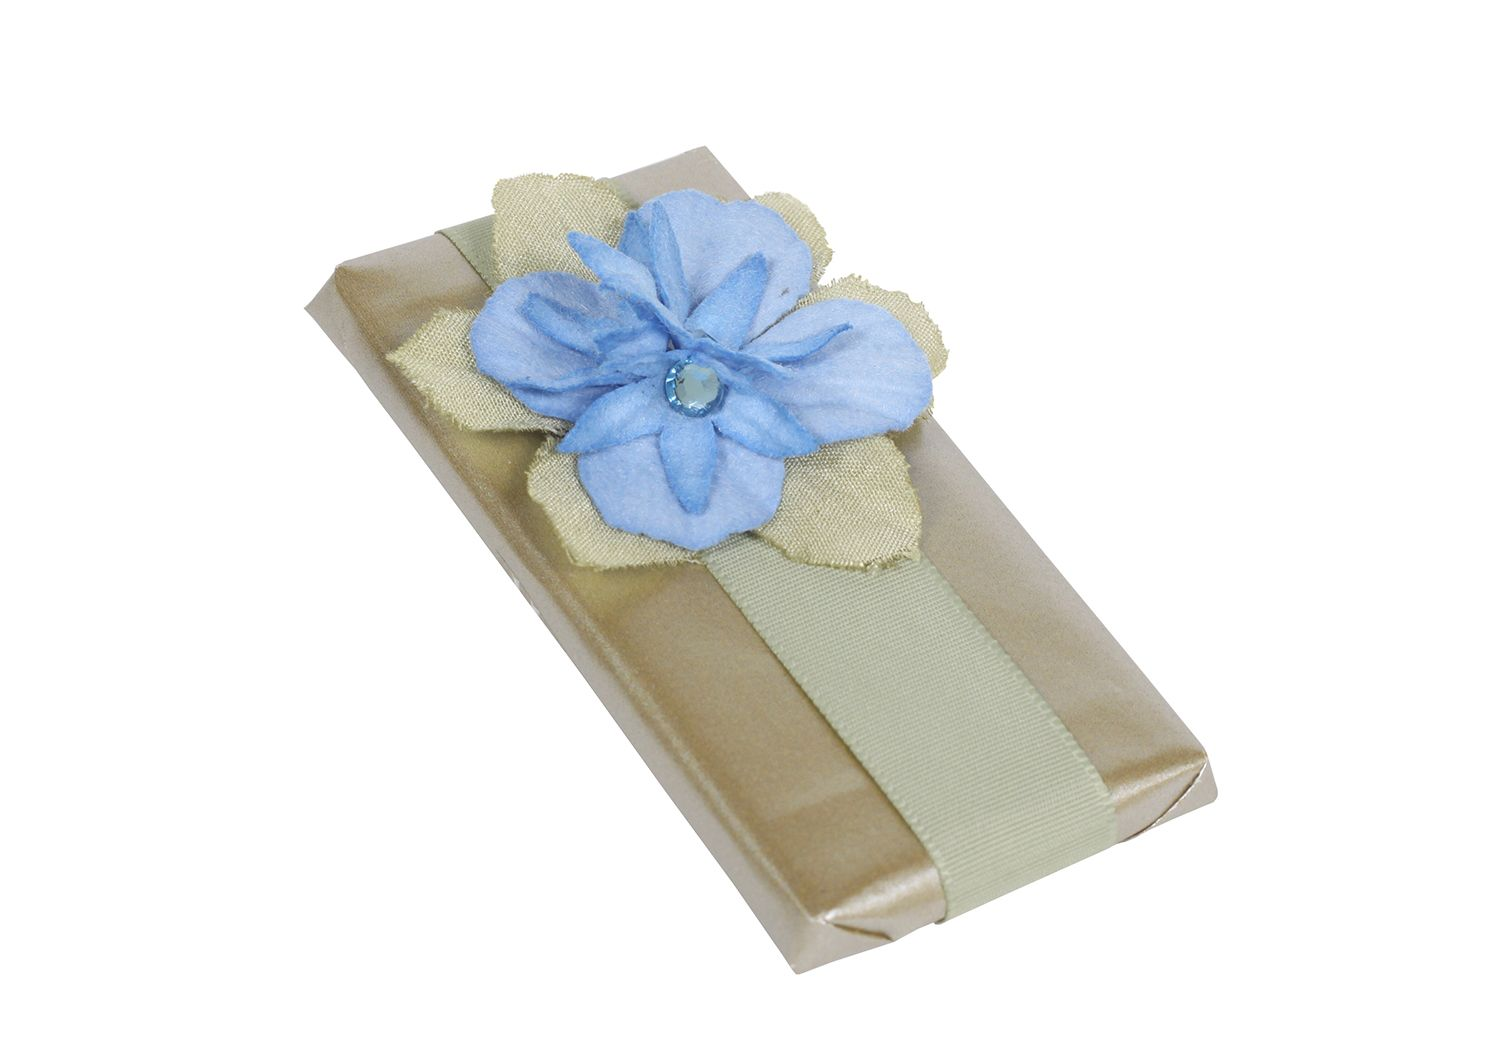 Patchi Blue Beauty Chocolate favor http://patchi.us/wedding ...